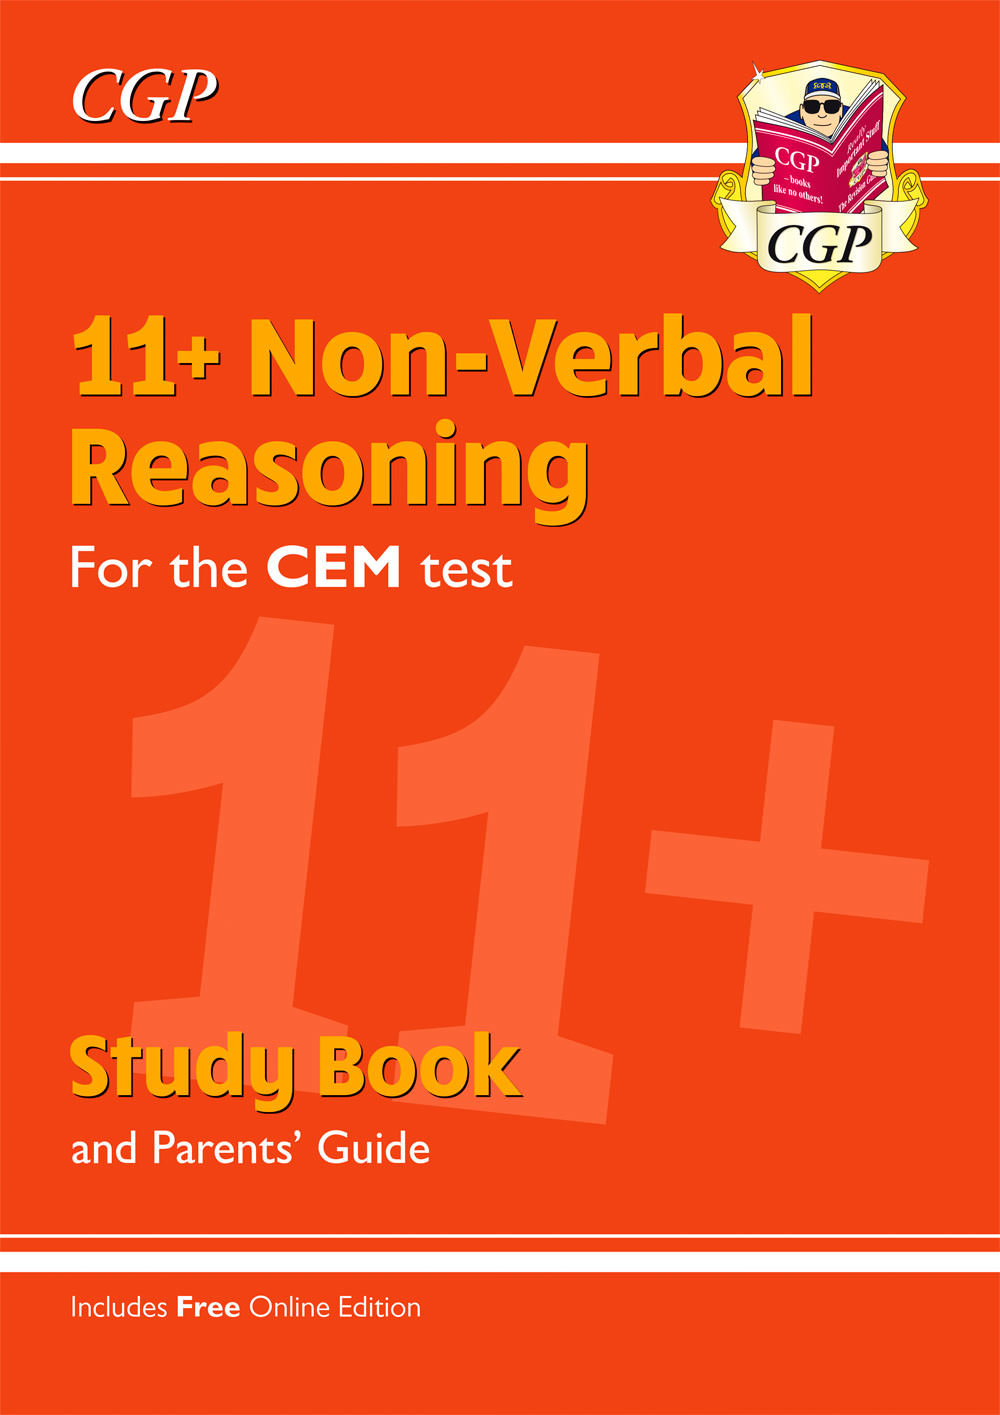 NHRDE2 - New 11+ CEM Non-Verbal Reasoning Study Book (with Parents' Guide & Online Edition)